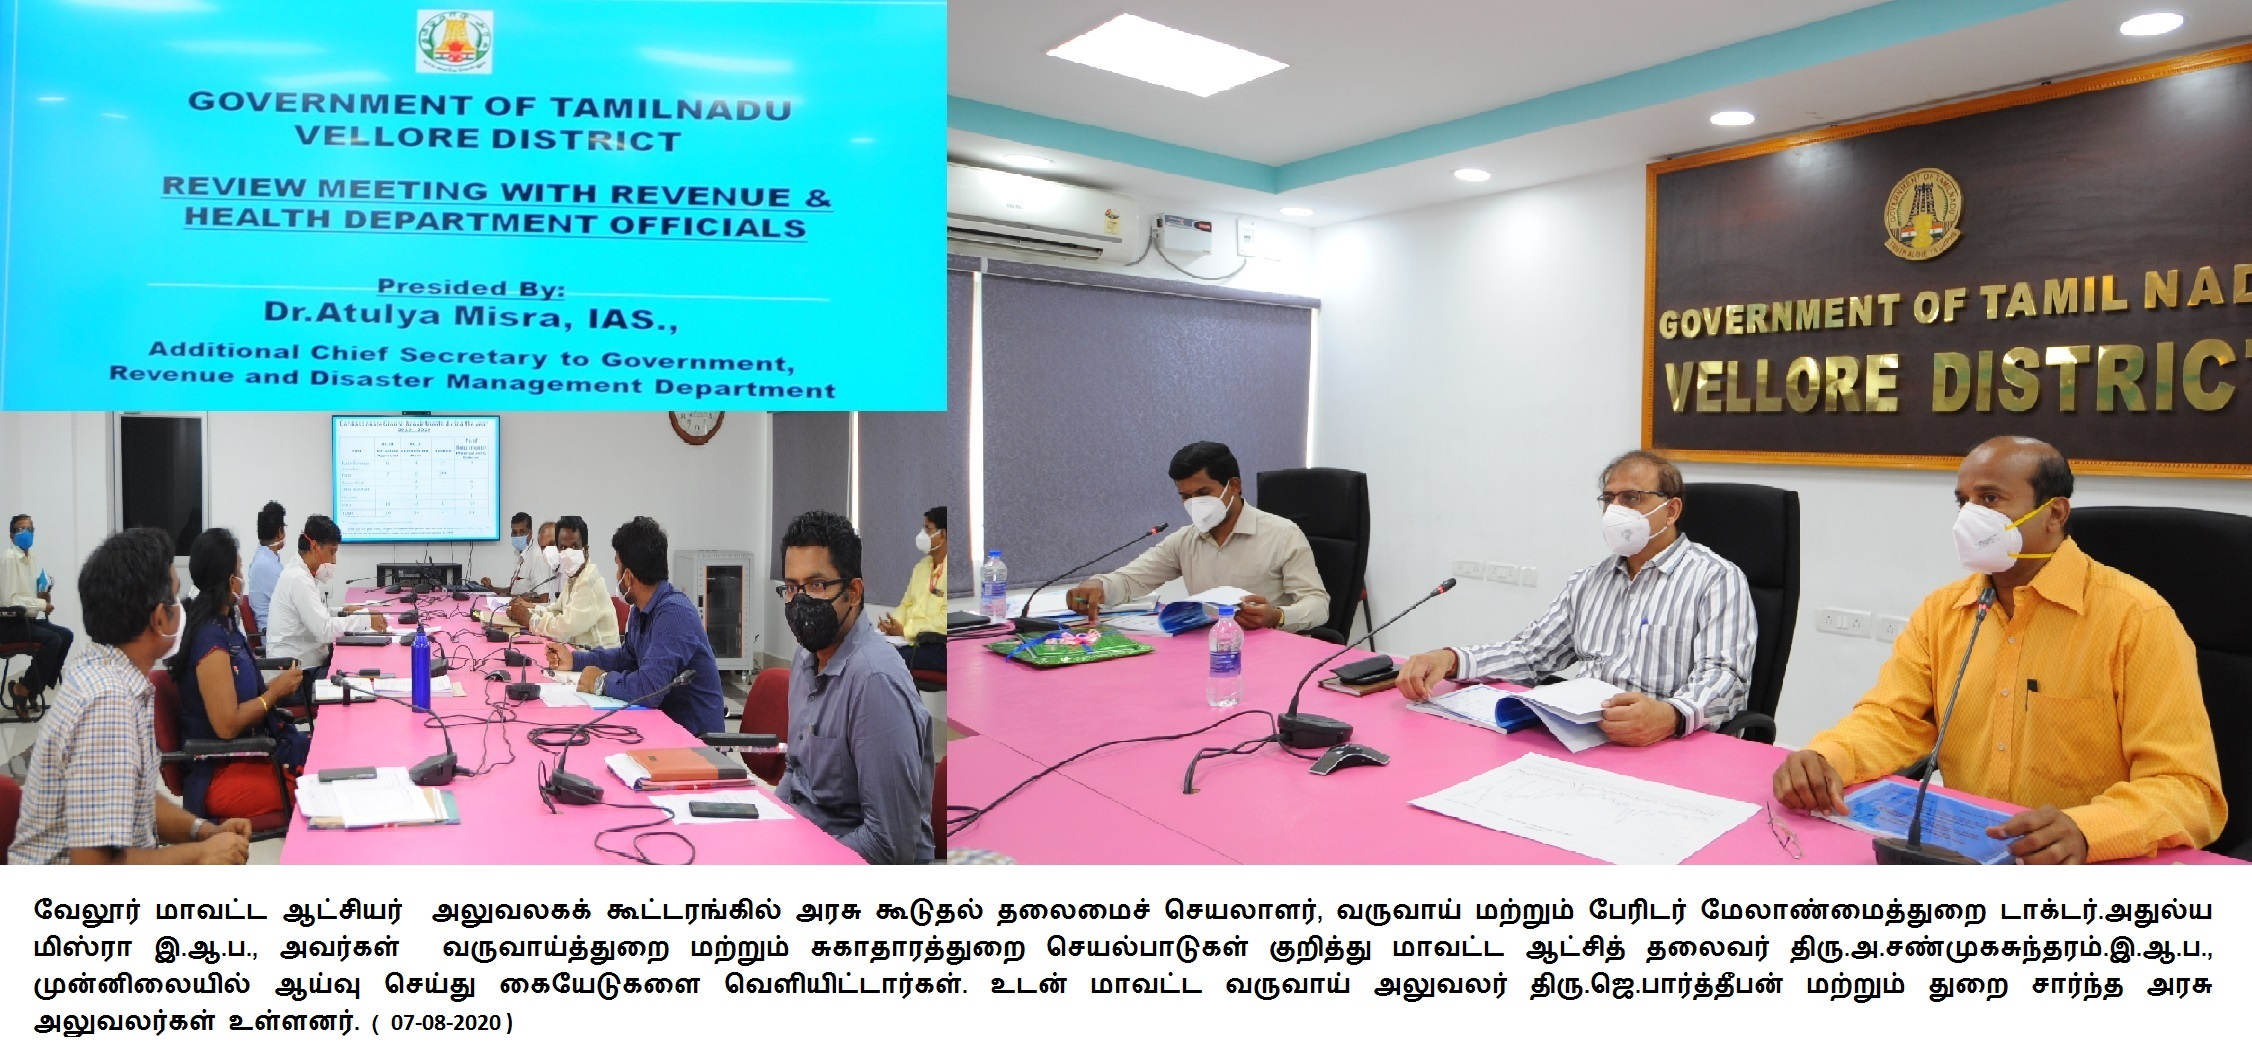 Additional Chief Secretary Review and Meeting with Revenue and Health Department Officials 07-08-2020